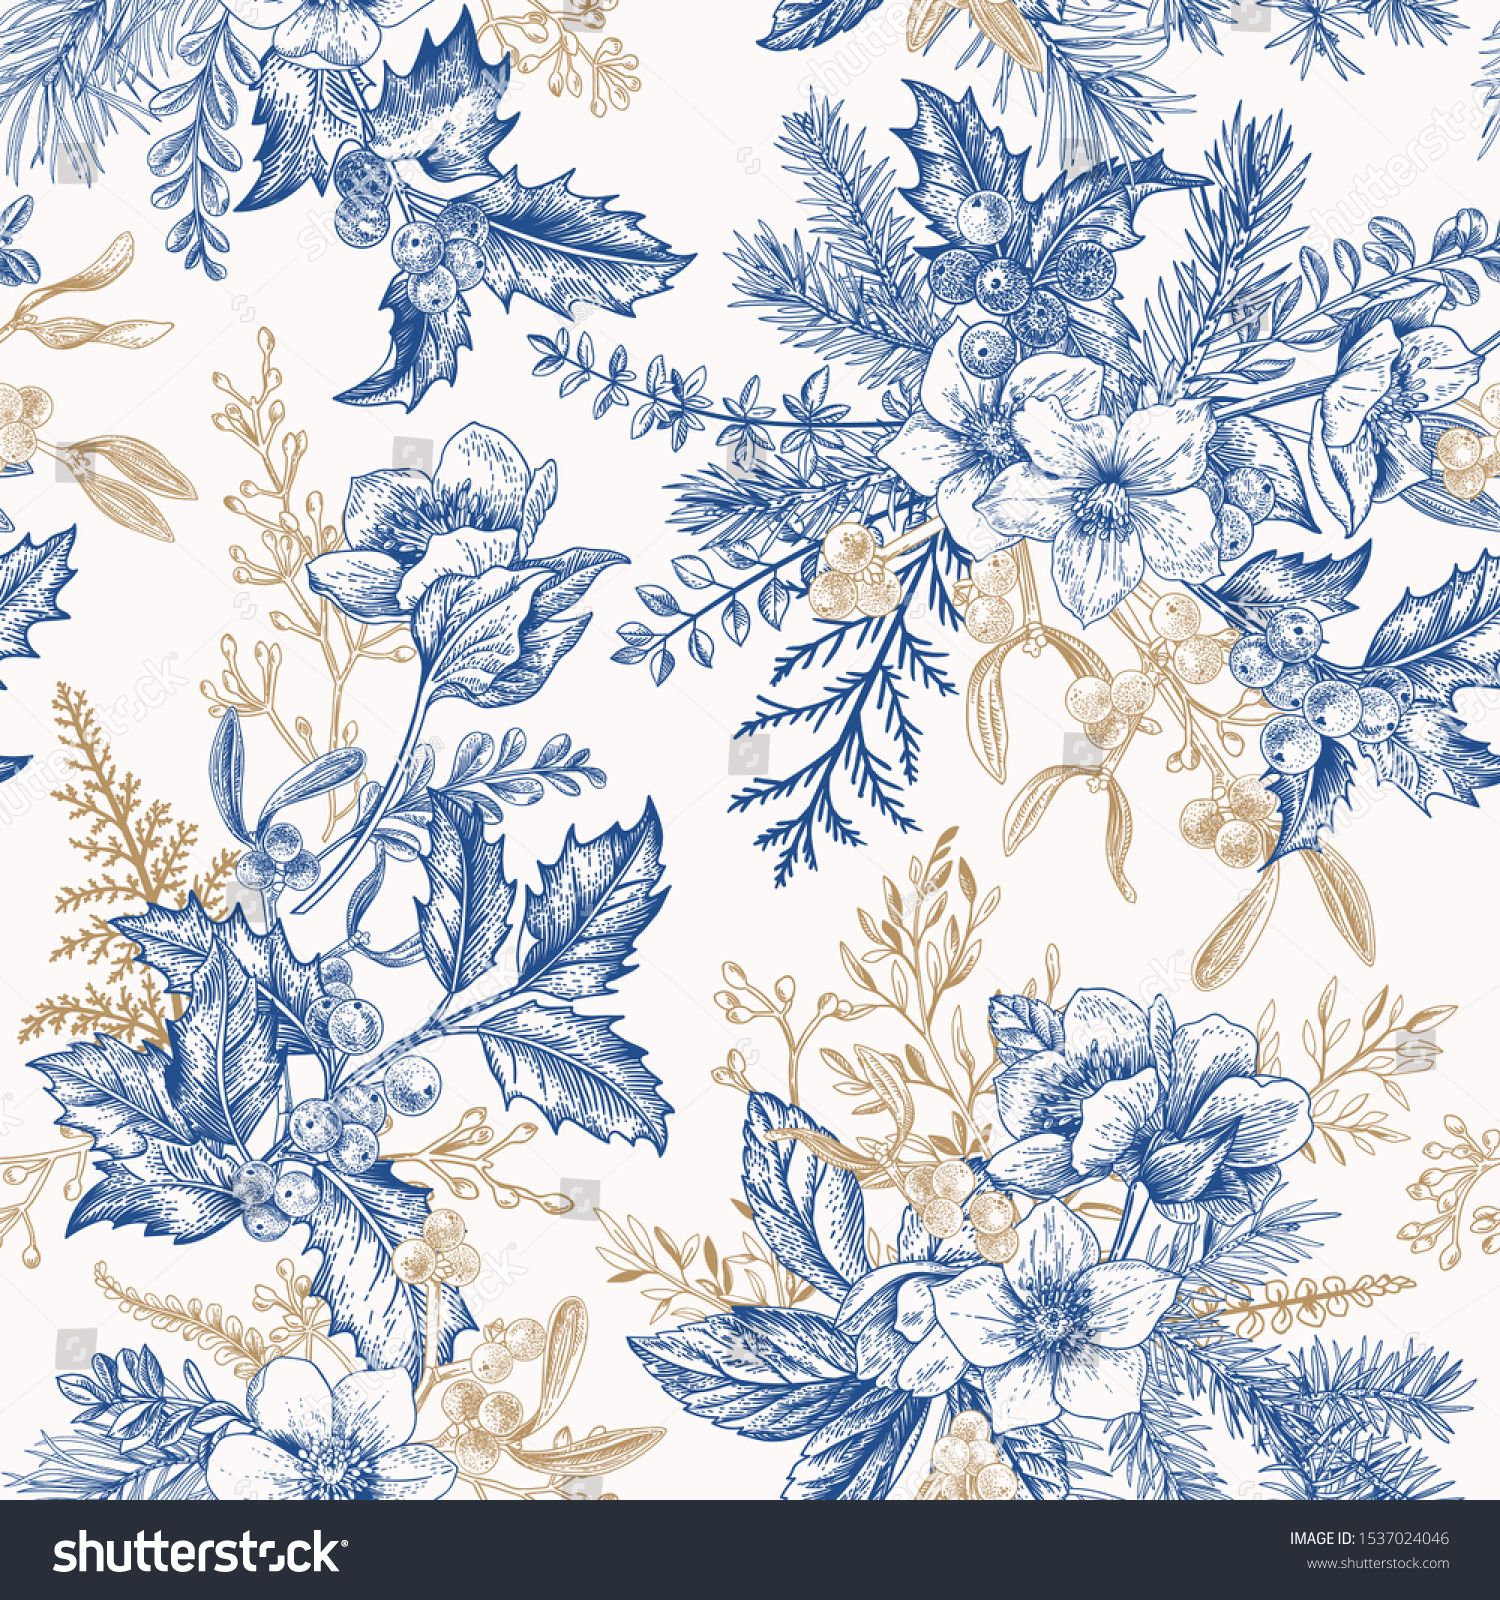 Winter seamless pattern with hellebore flowers, ferns, conifers, eucalyptus seeds. Christmas vintage background. Botanical illustration. Blue and gold. #1537024046